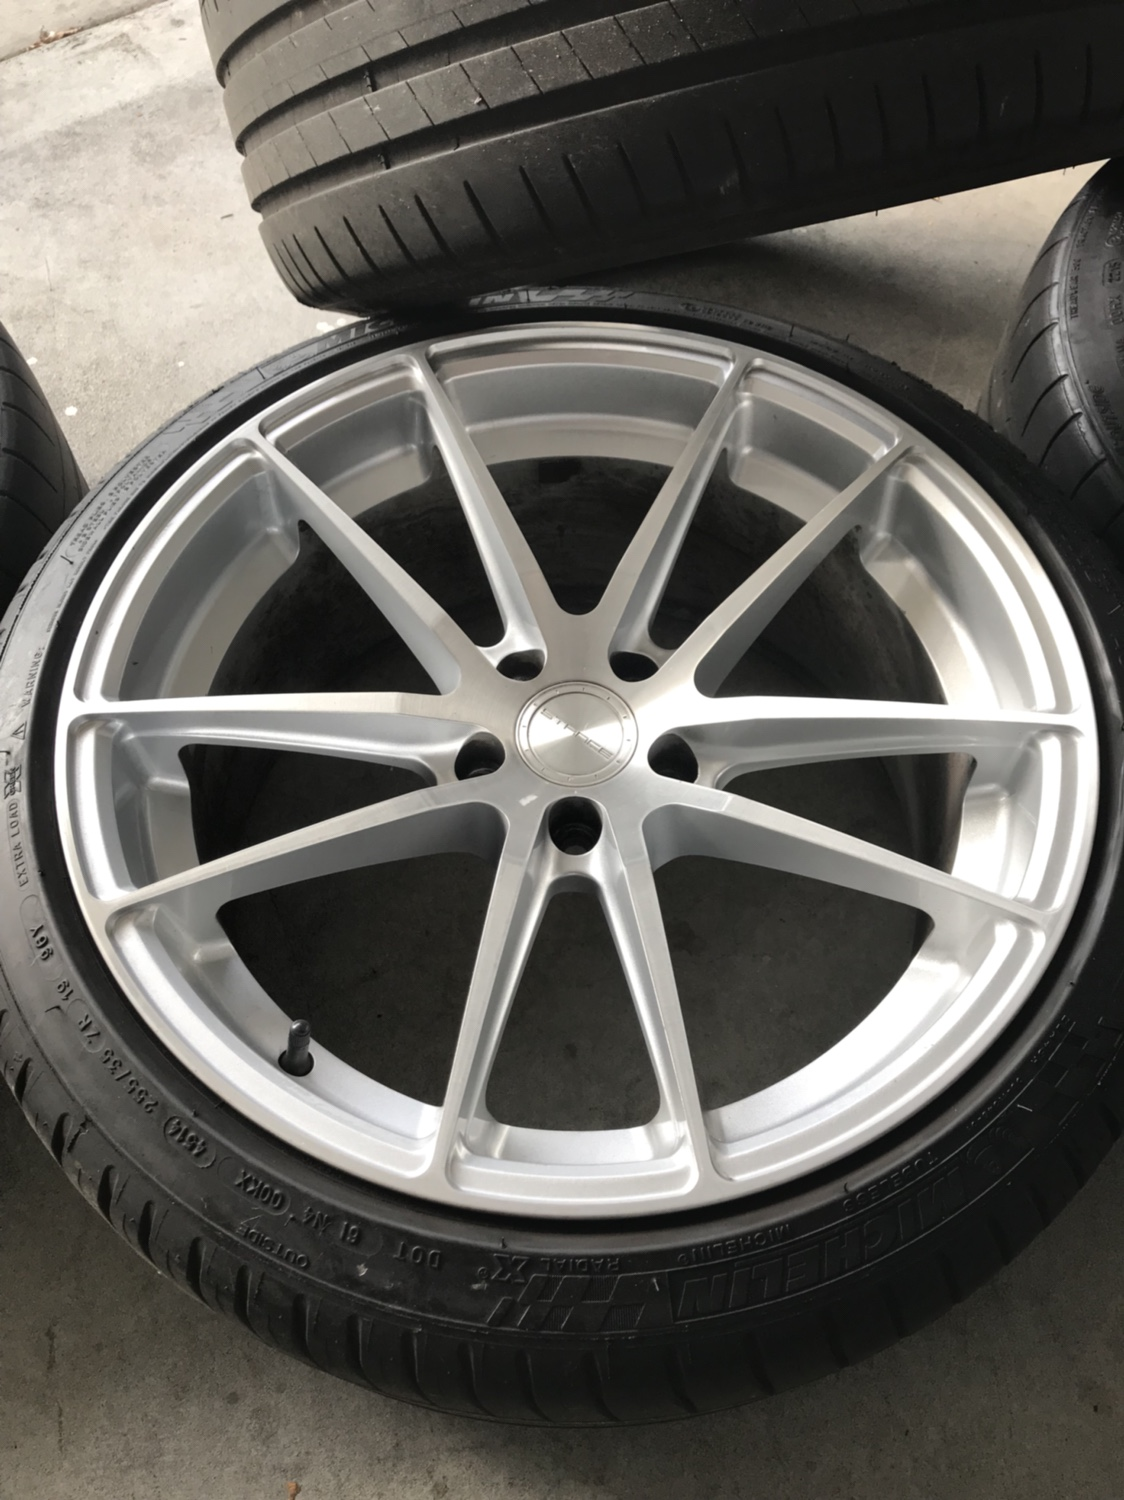 Jetta Gli For Sale >> For Sale: Stance SC1 19x9.5 ET35 Wheels with tires